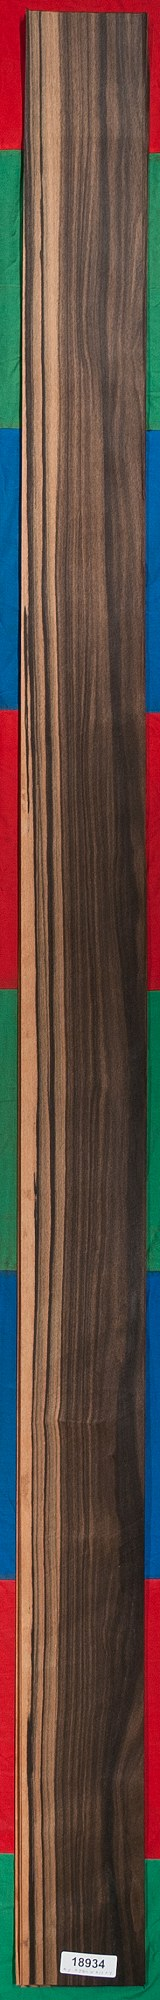 AAA Quartersawn Ebony (Macassar) Veneer Sheet